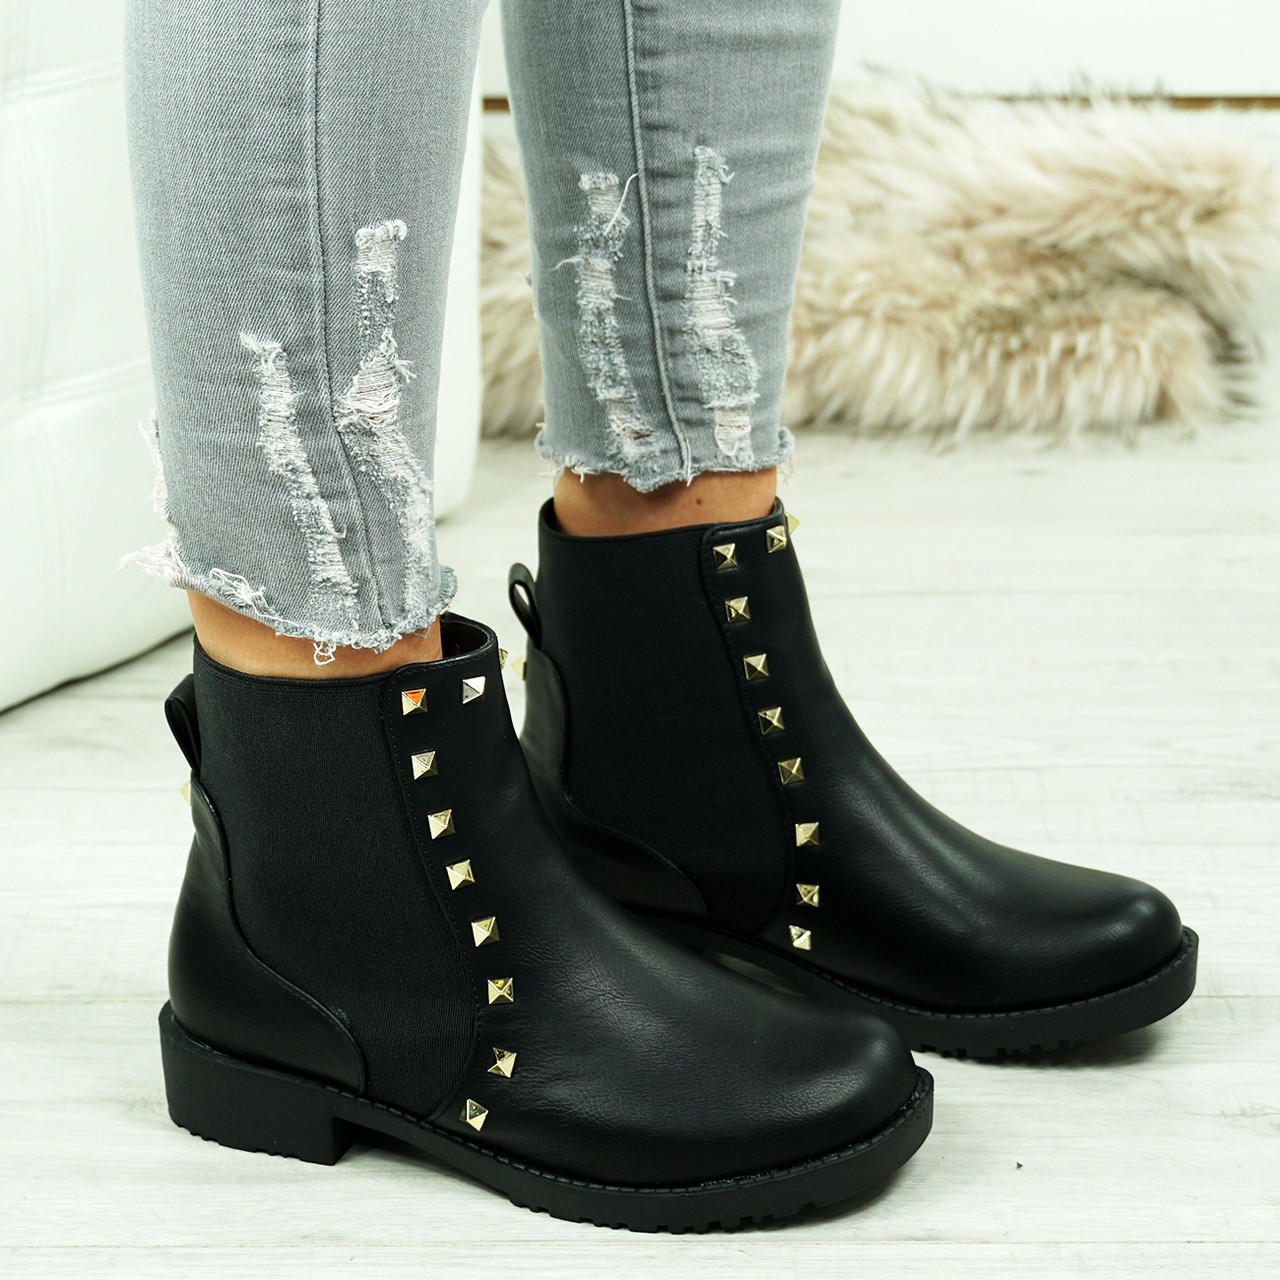 15a243eb1495 New Womens Chelsea Ankle Boots Rock Studs Chunky Low Block Heel Grip Sole  Shoes